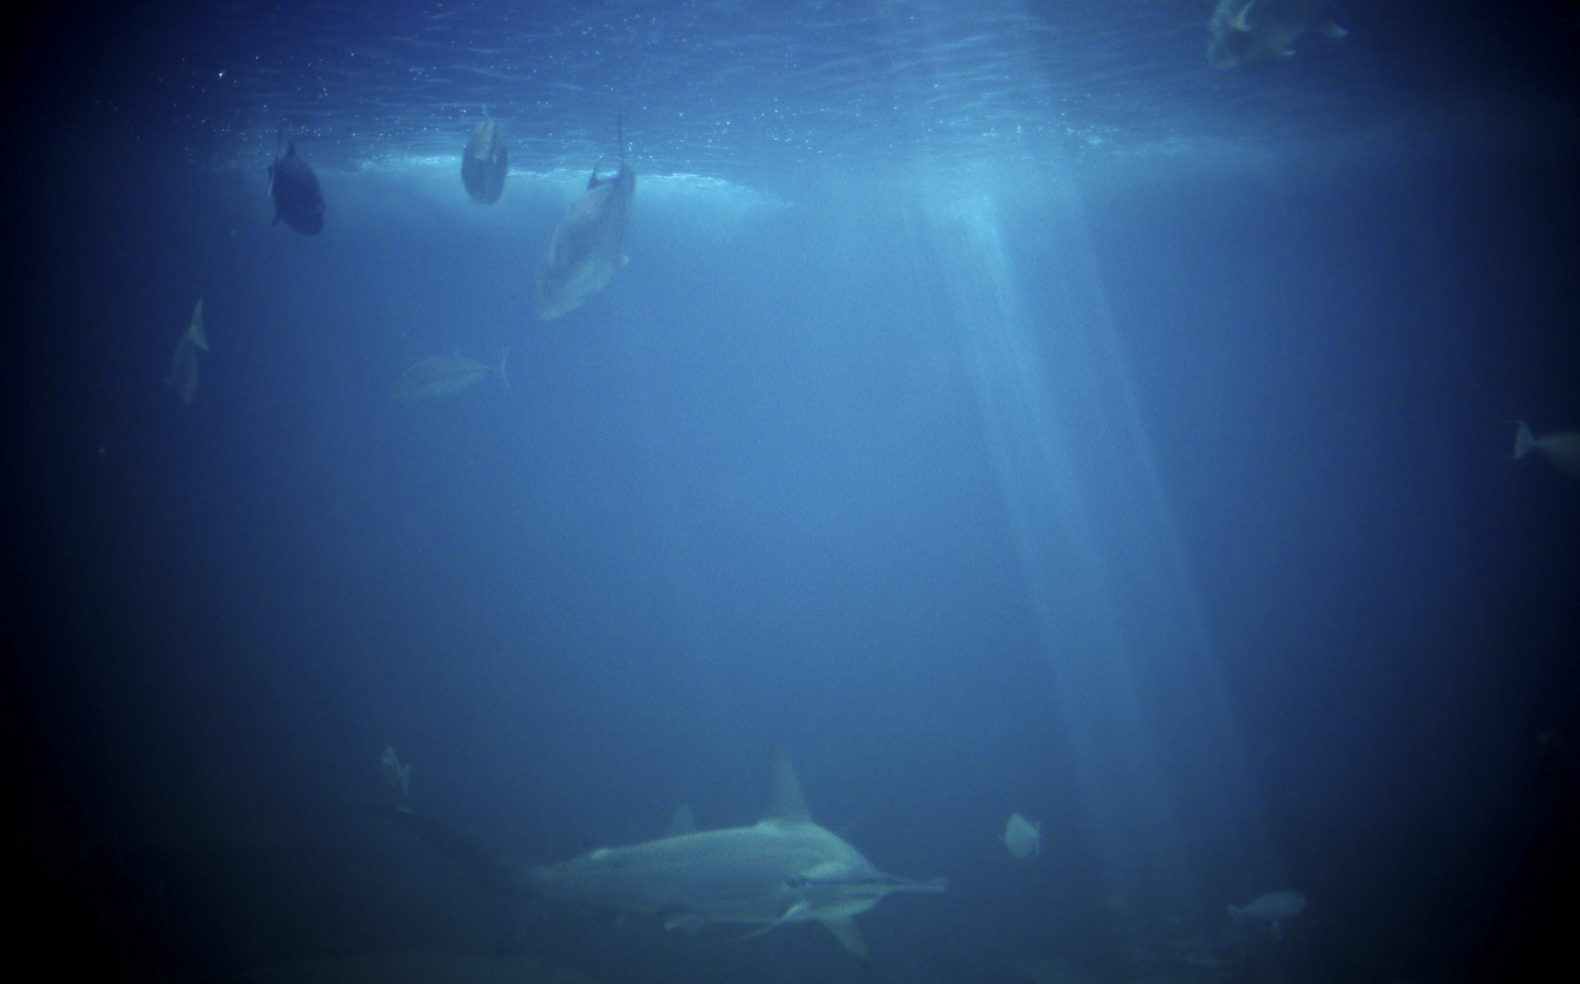 Professional travel photograph of sharks and fish swiming in a tank with some light filtering through the water.